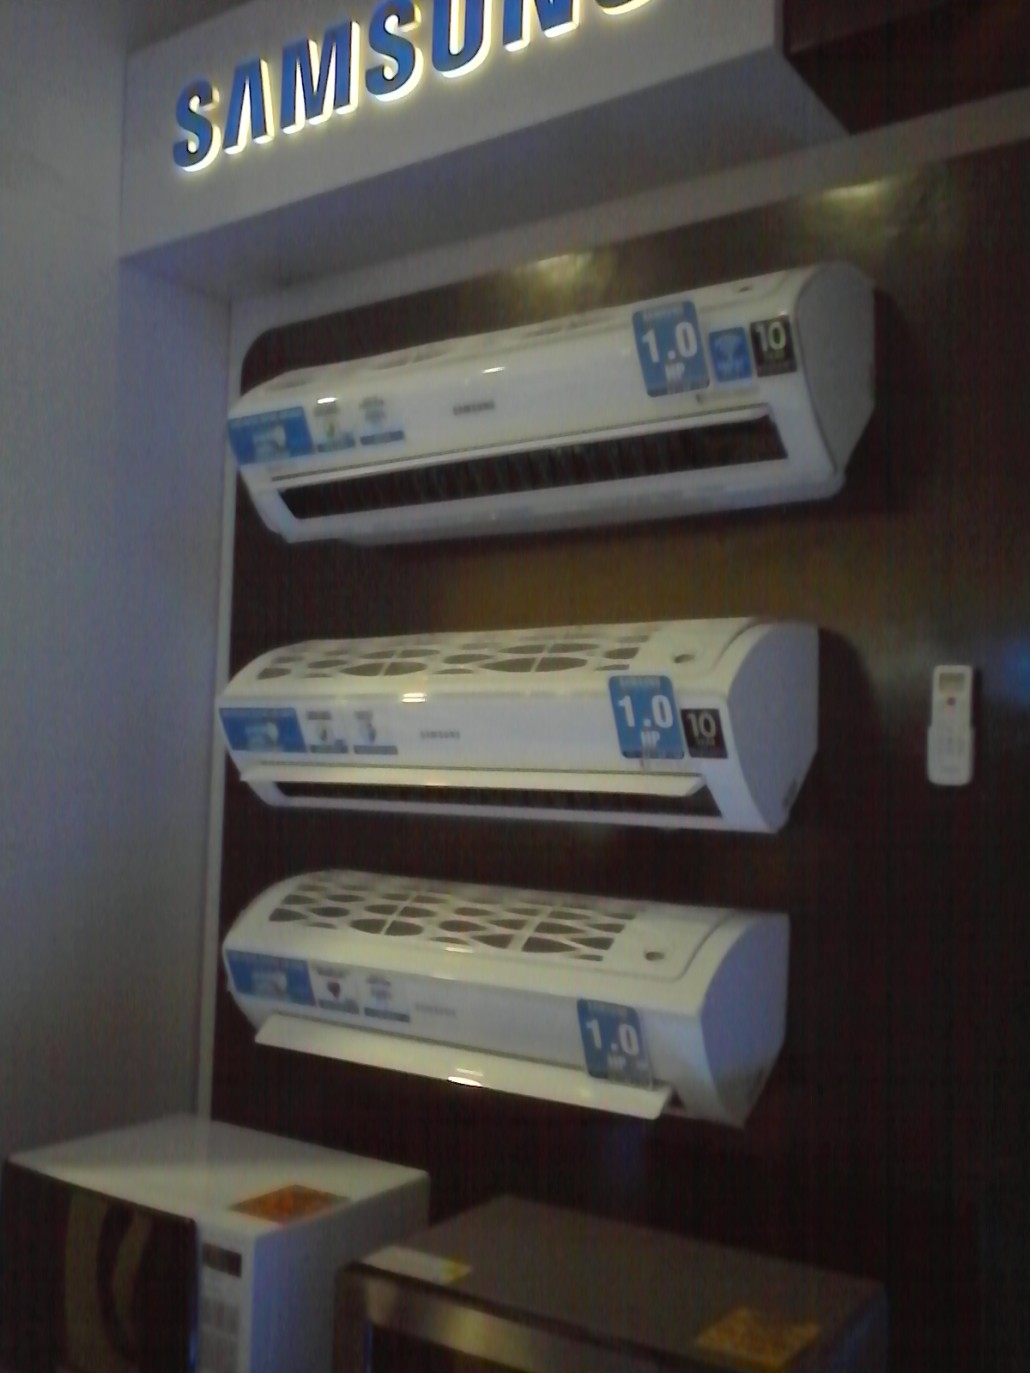 The series comes in three types – the Premium Inverter that has a WiFi to enable users to control their air conditioner anytime and anywhere, the Standard Inverter, and the Non-Inverter.